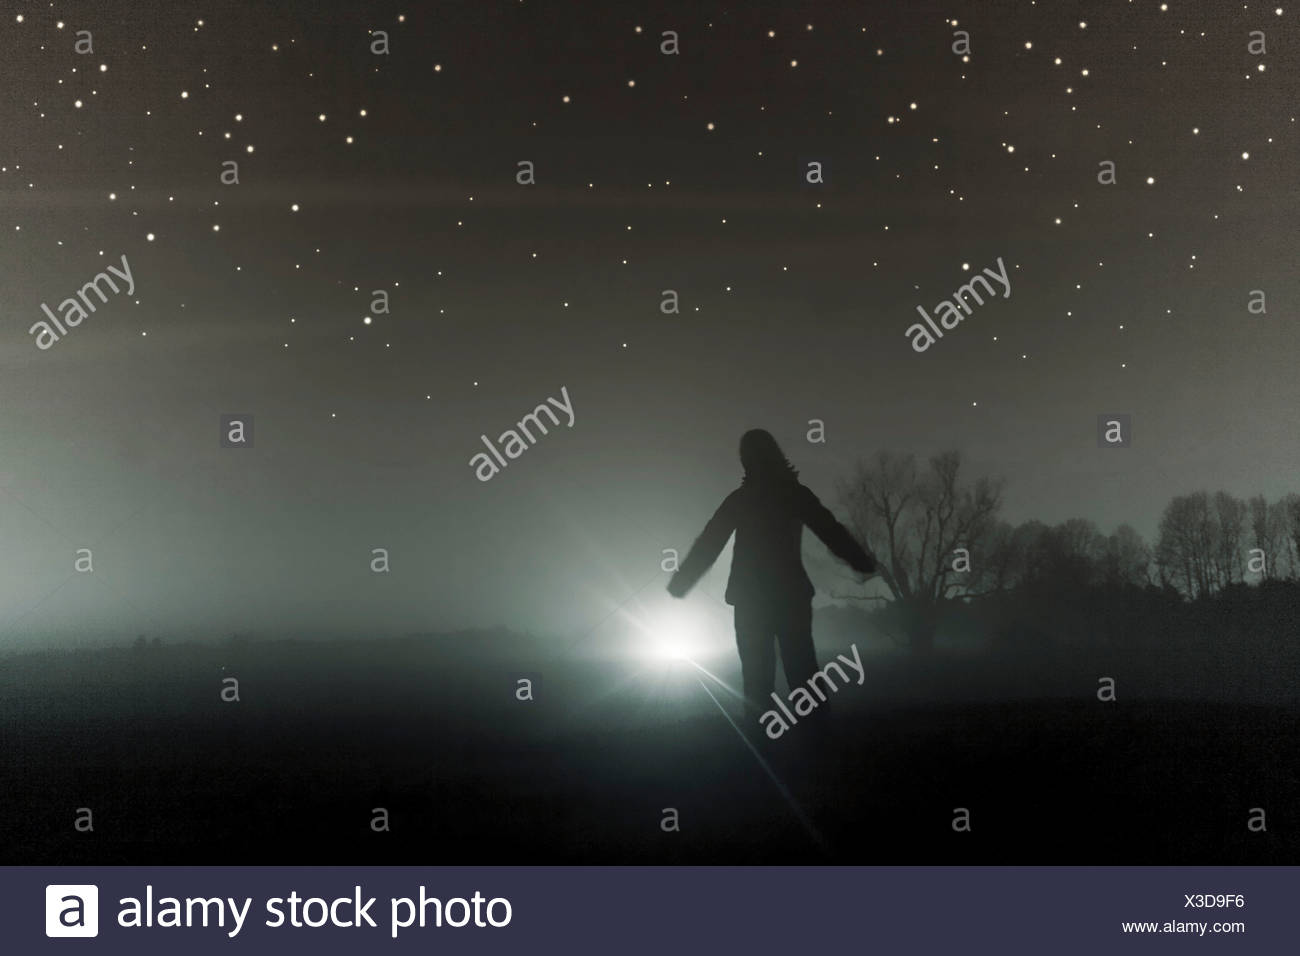 A silhouetted figure standing in a field with a bright light in the distance - Stock Image